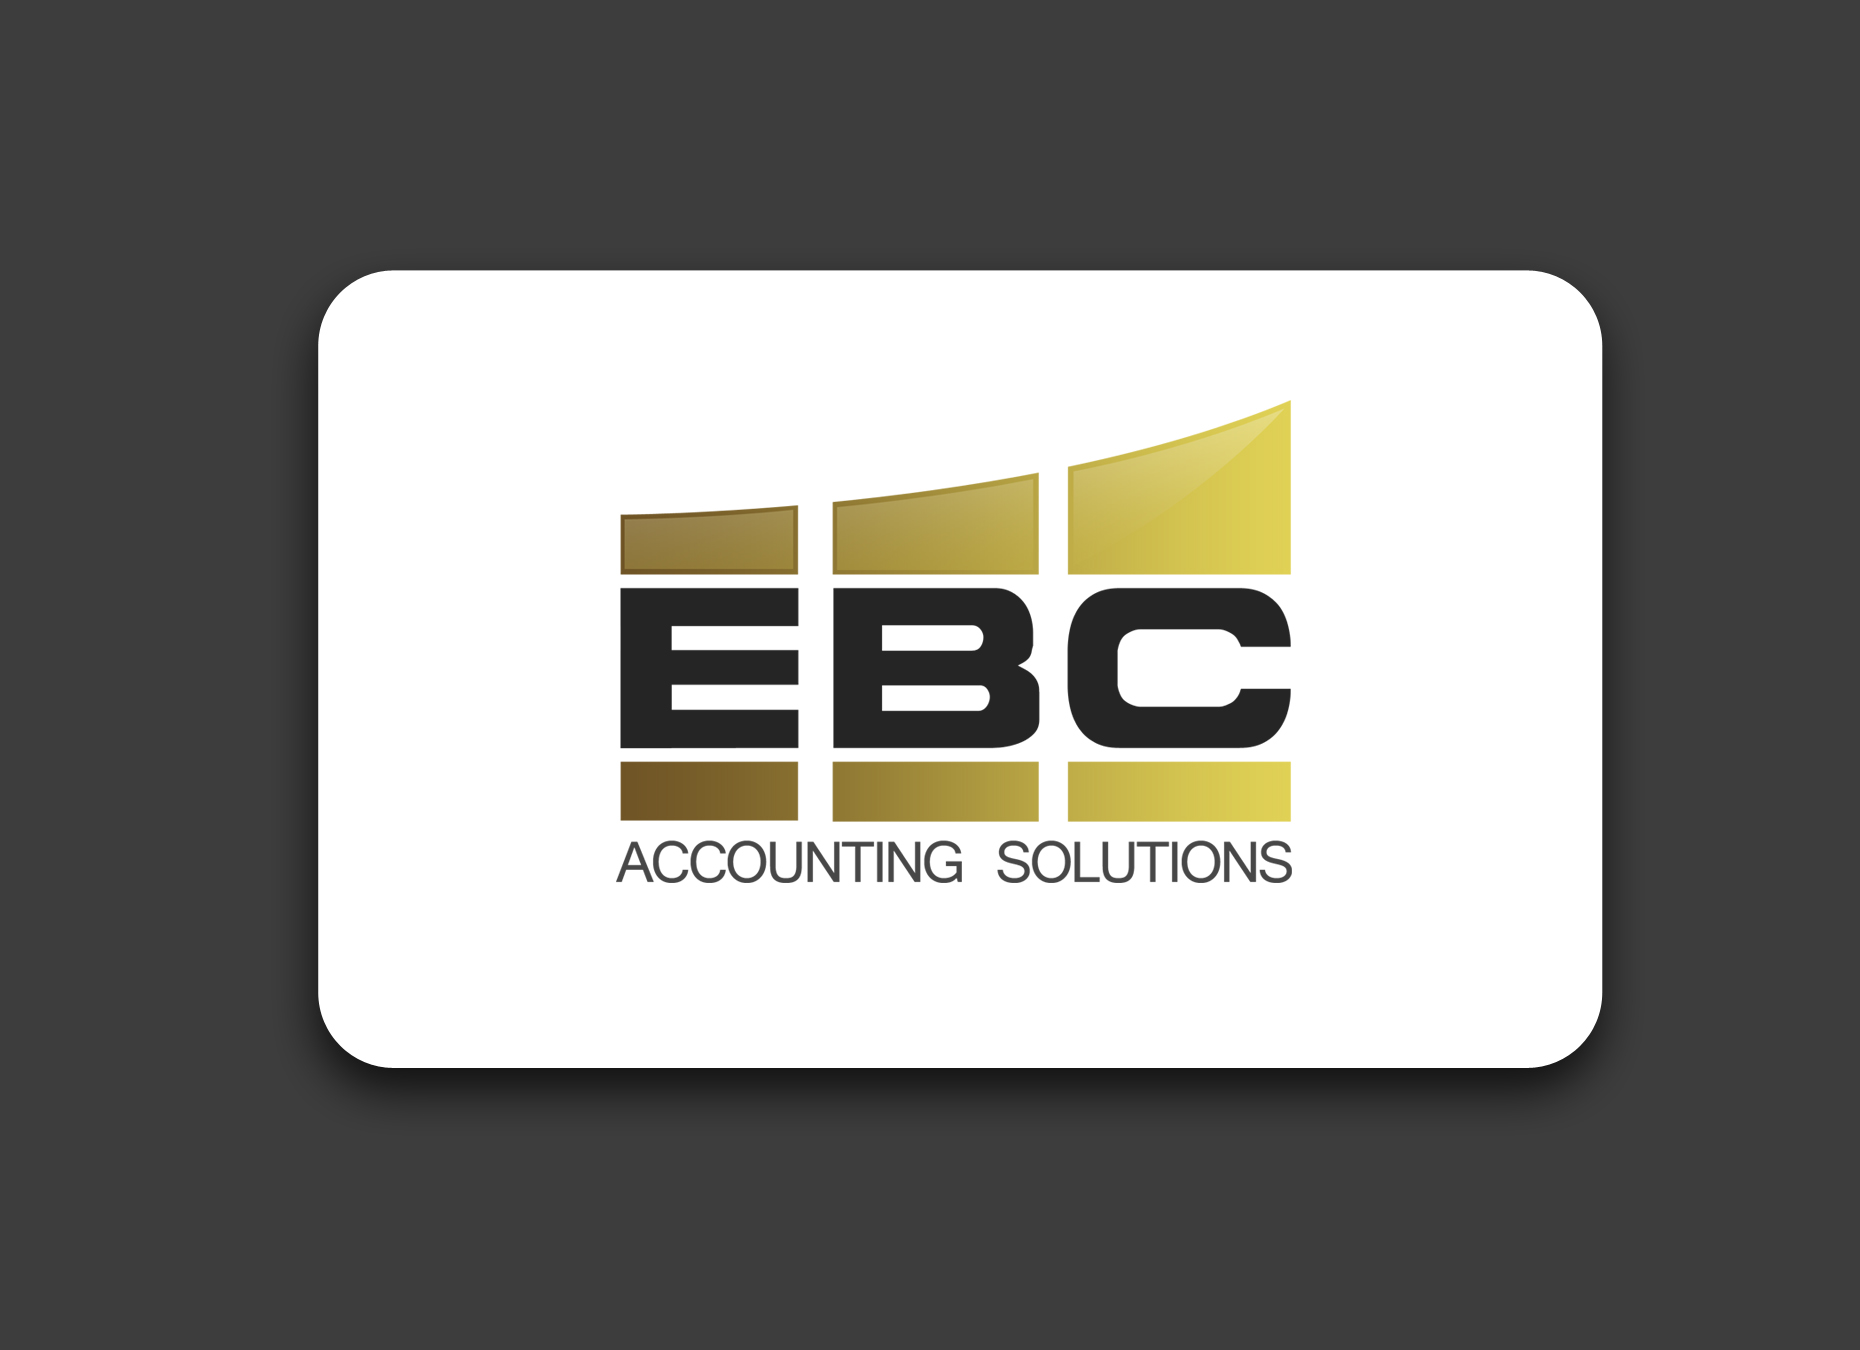 Logo Design by omARTist - Entry No. 243 in the Logo Design Contest New Logo Design for EBC Accounting Solutions.